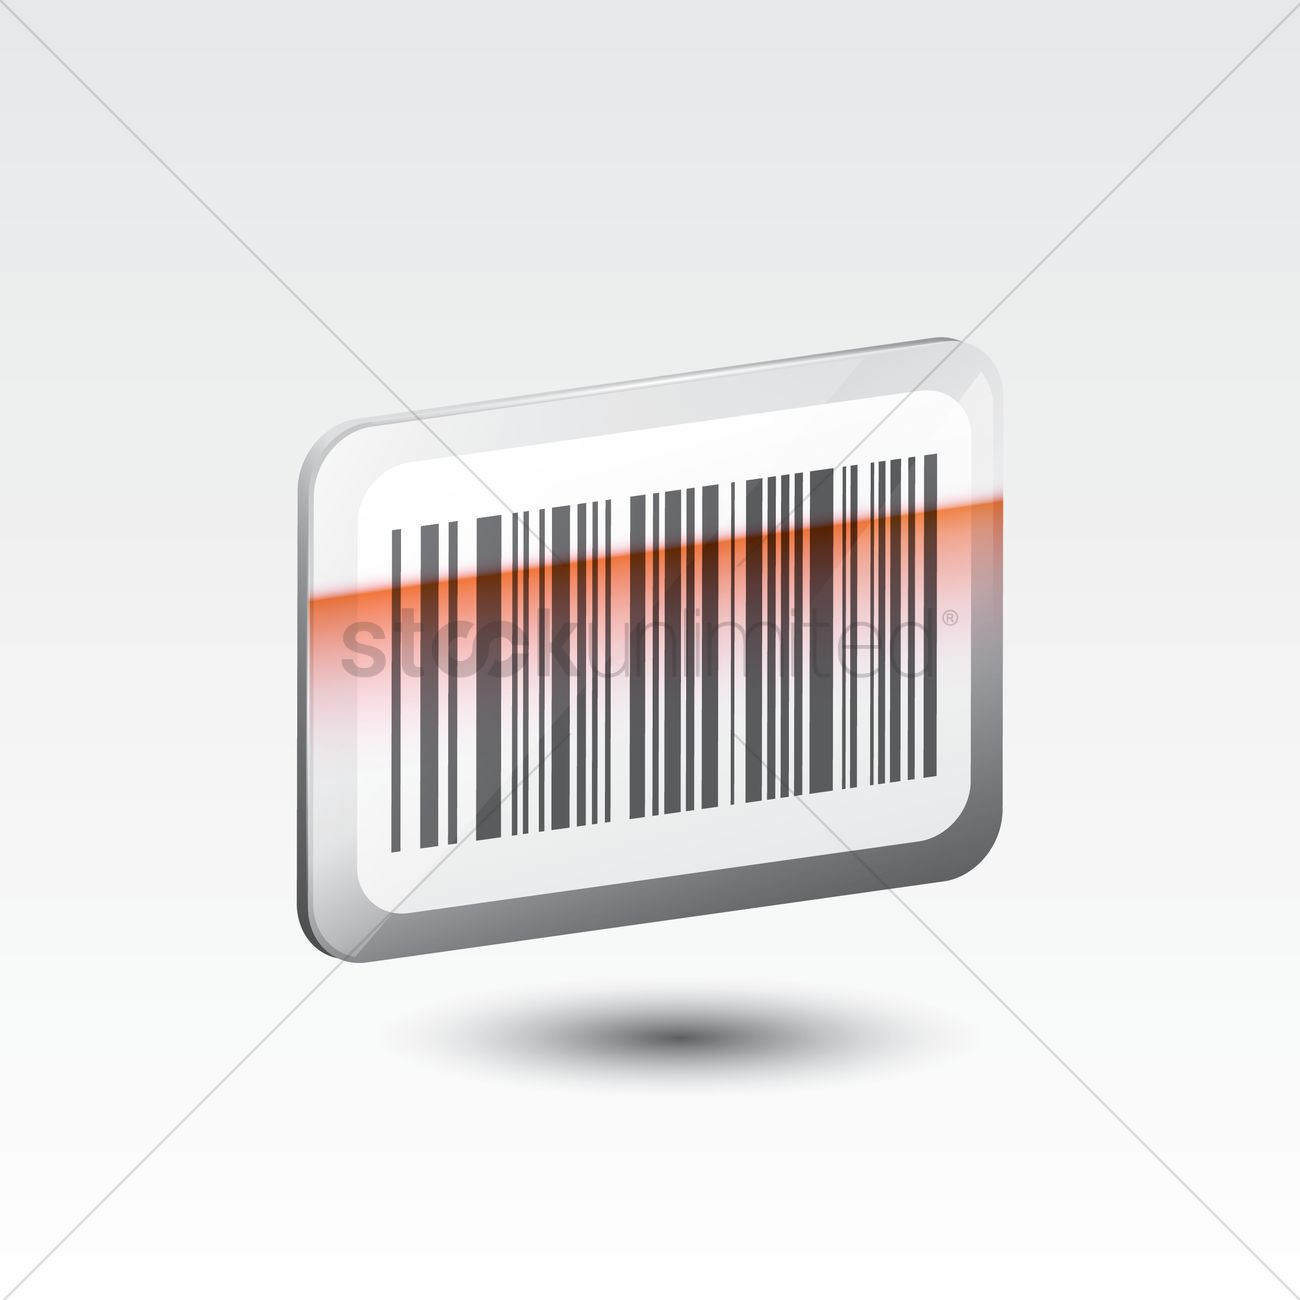 Free Barcode Vector Image - 1619507 | StockUnlimited